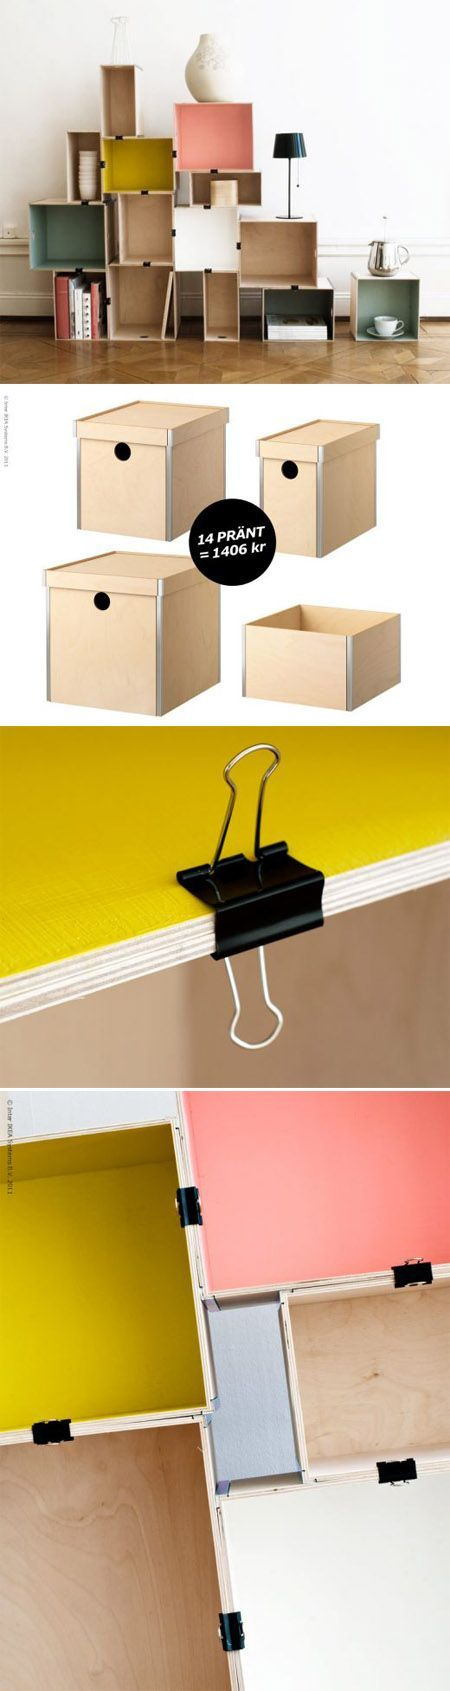 25 Awesome DIY Ideas For Bookshelves